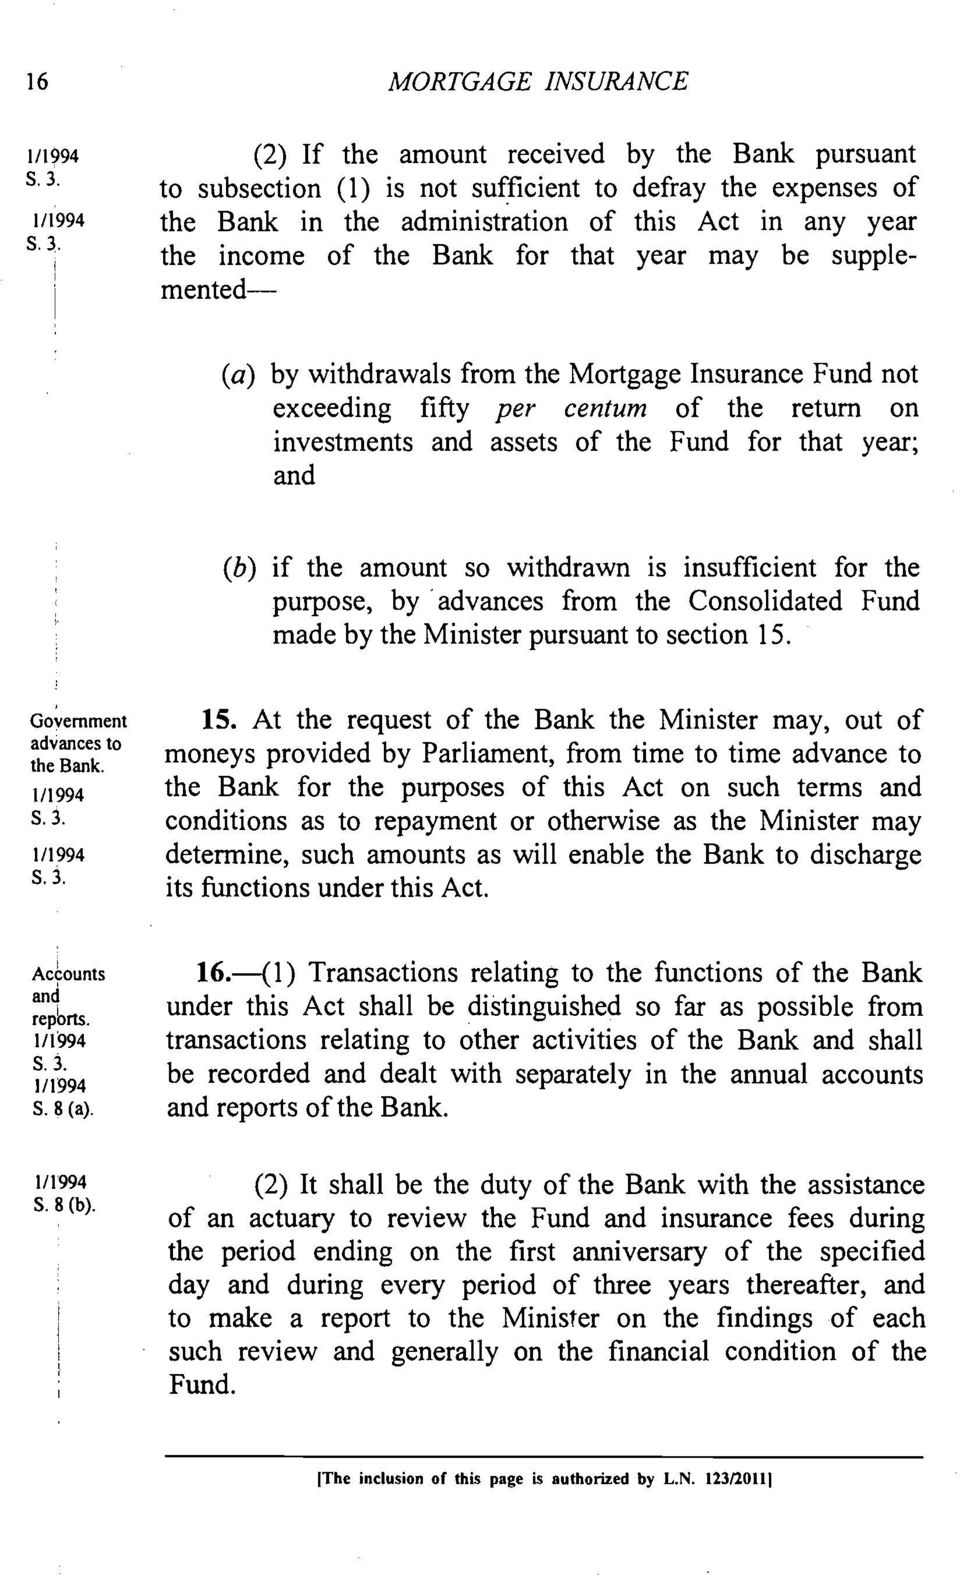 year; and (b) if the amount so withdrawn is insufficient for the purpose, by 'advances from the Consolidated Fund made by the Minister pursuant to section 15.